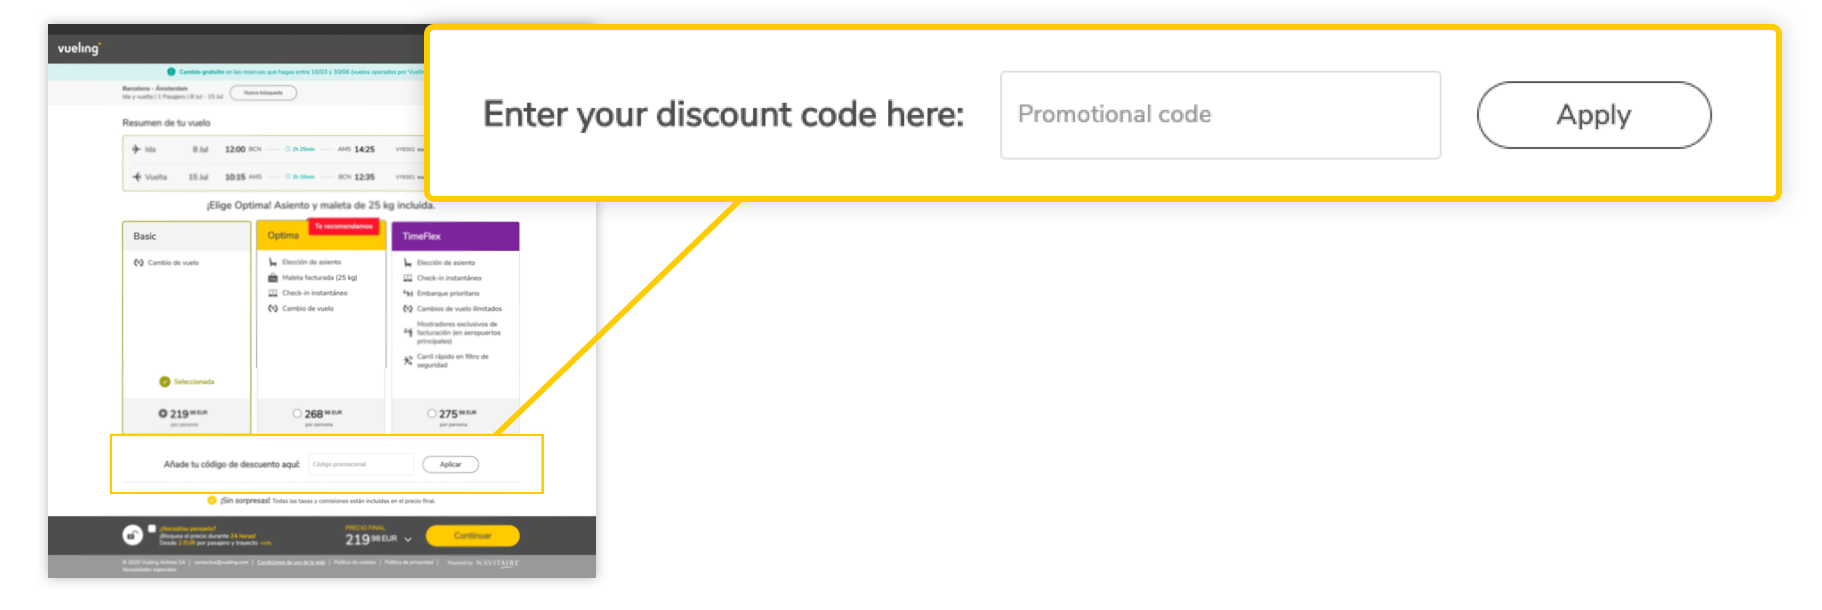 vueling promotion code 2020